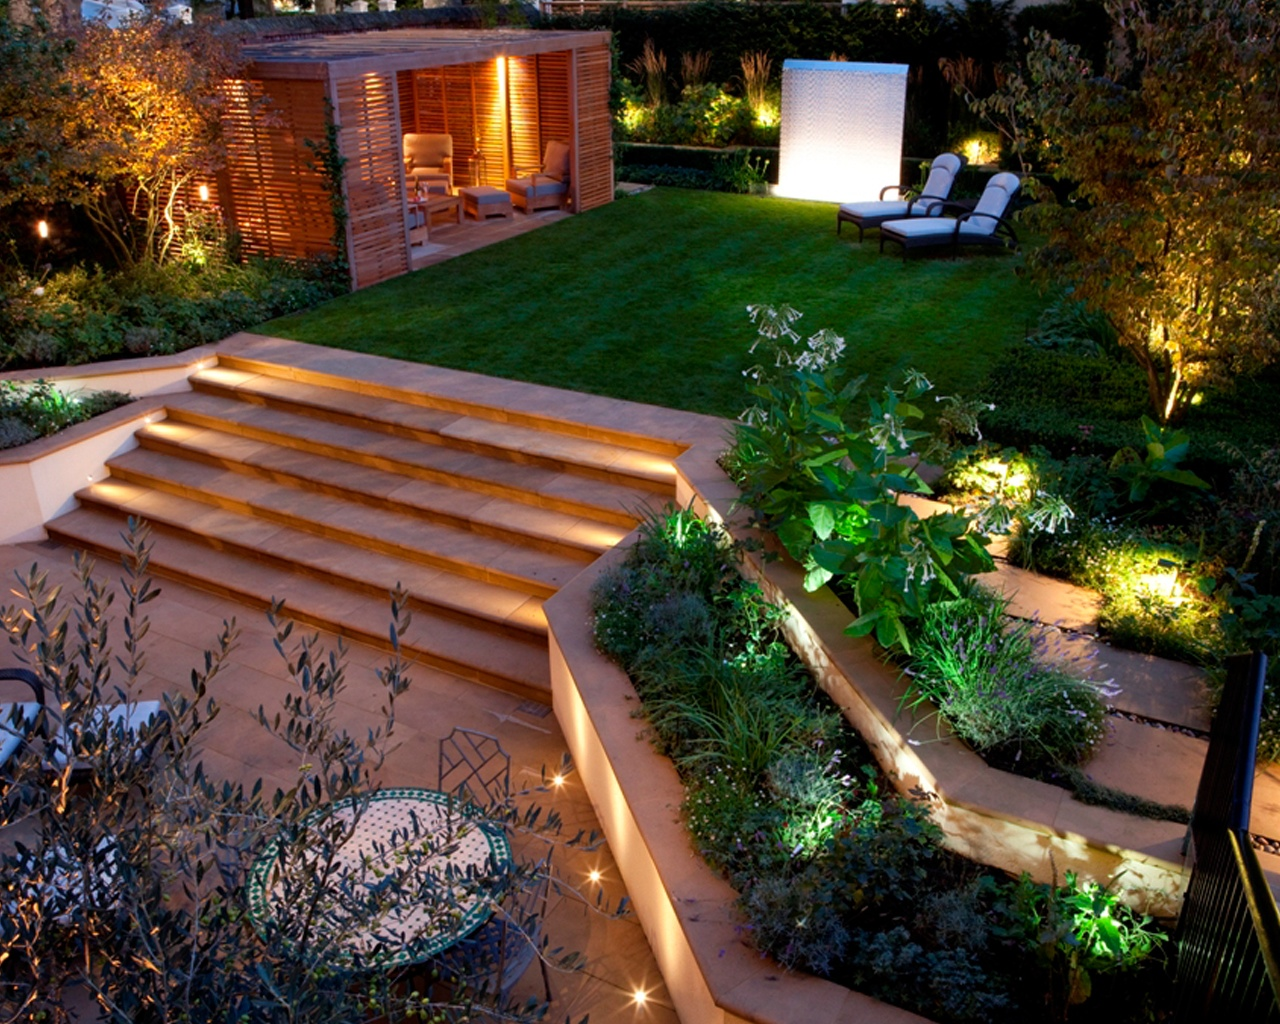 50 modern garden design ideas to try in 2017 DOVEQYG